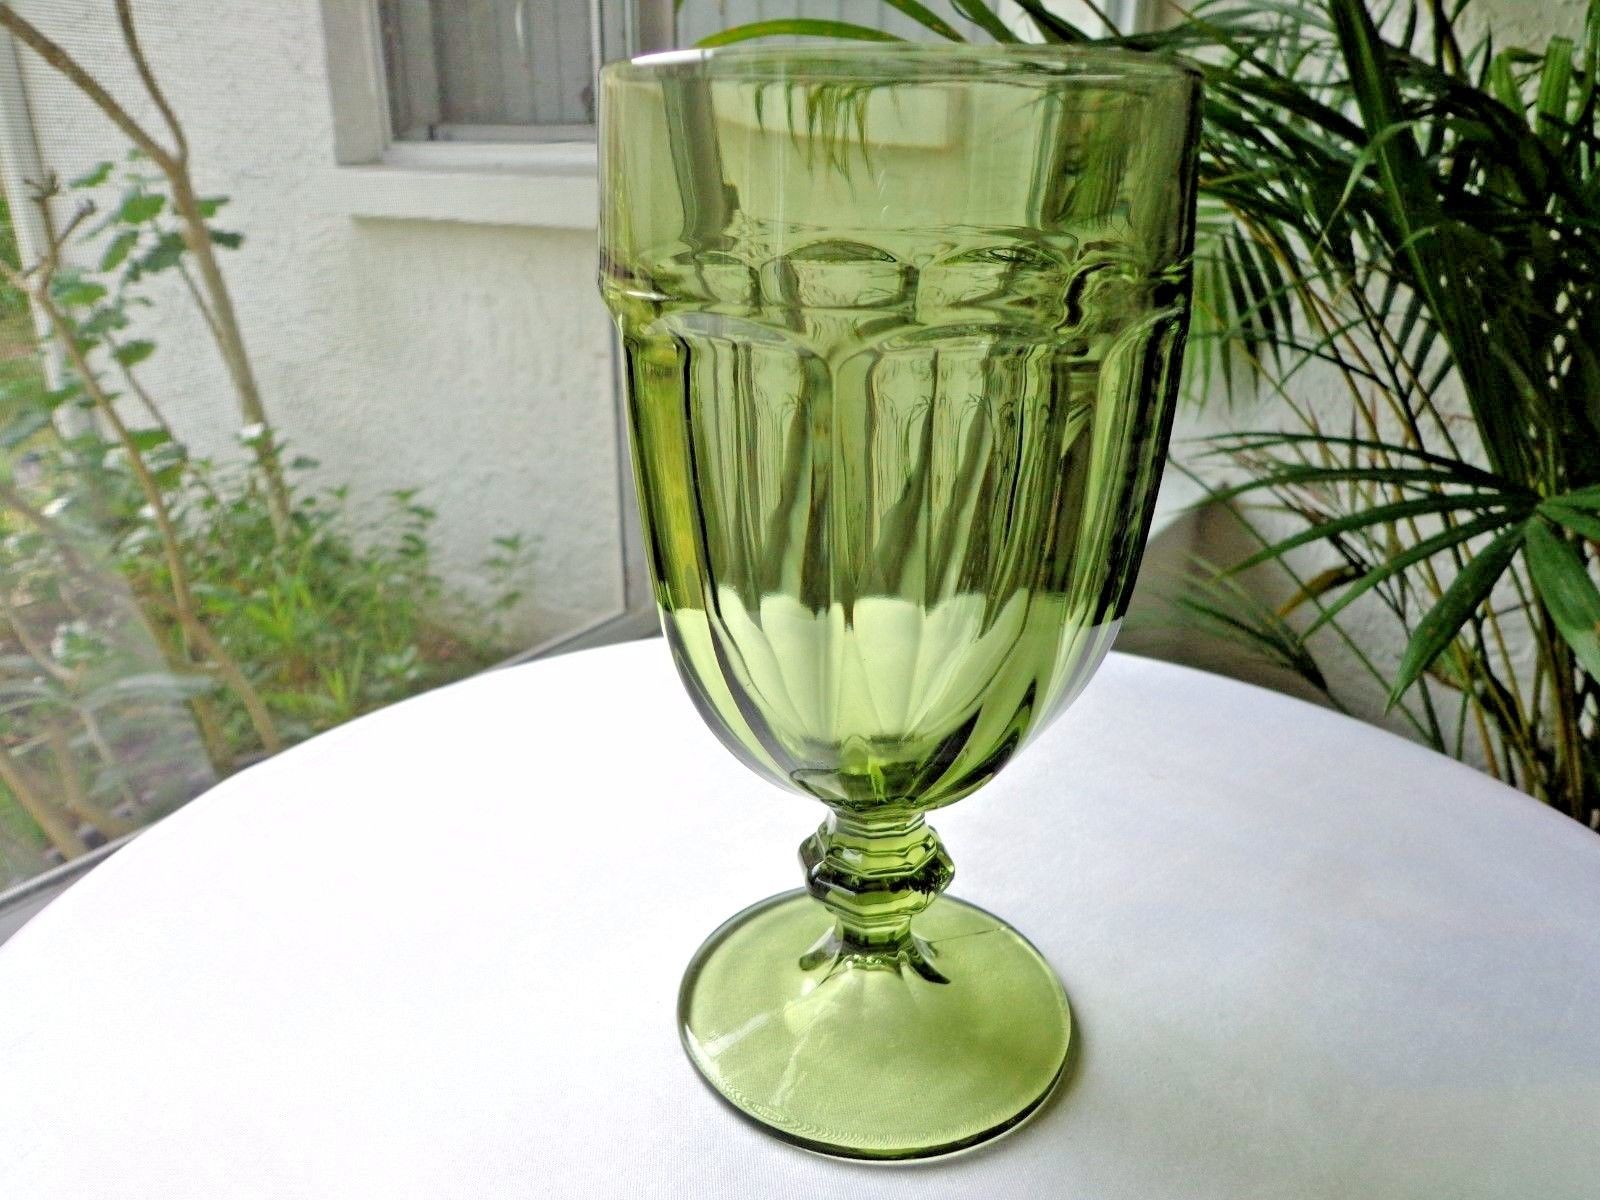 Primary image for Libbey Gibraltar Olive Green Iced Tea Glass Made in the USA Multiple Avail